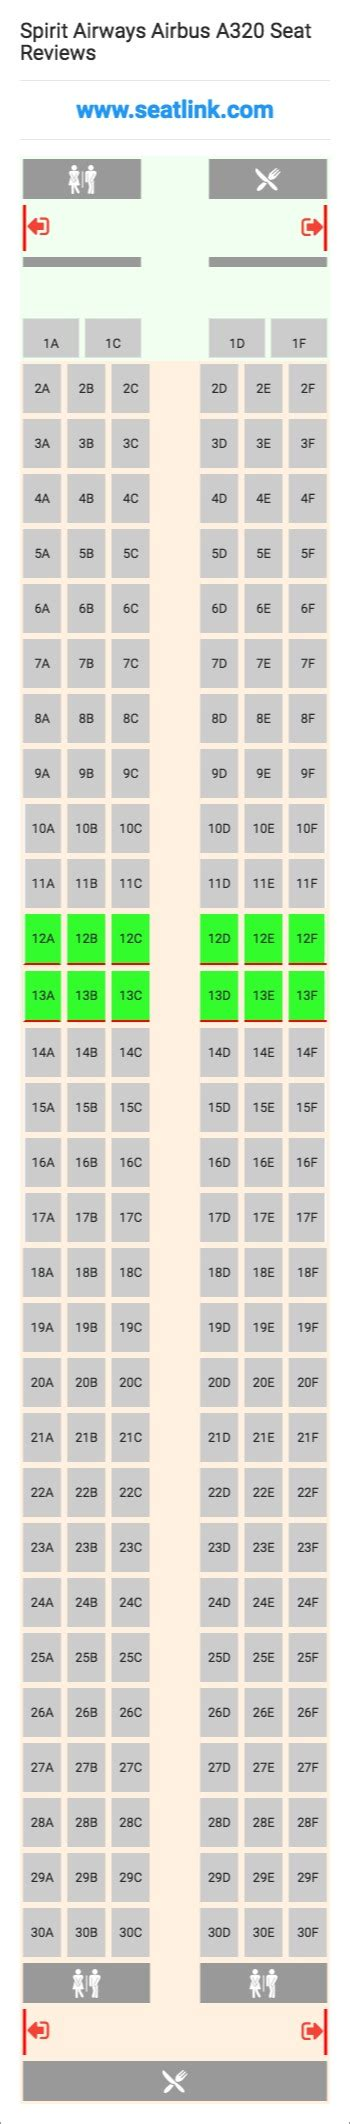 best seats airbus a320 a320 seat map air asia best seat 2018